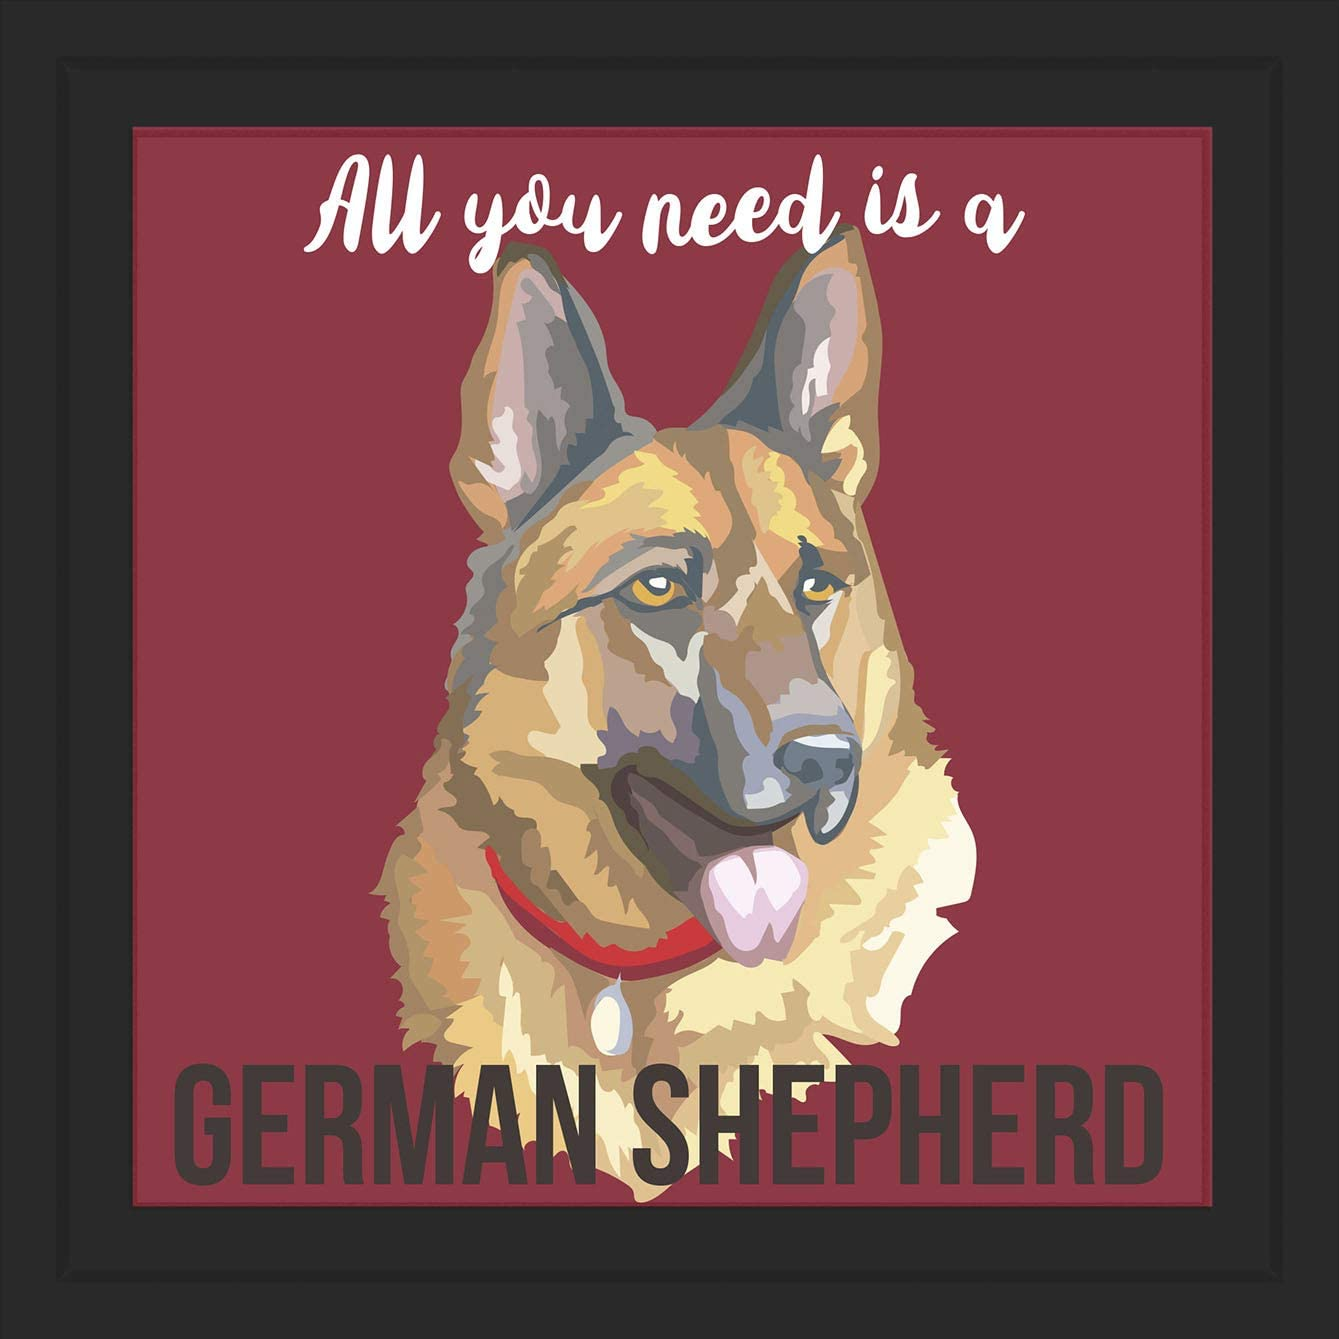 Gifts for German Shepherd Lover | Unique 7x7 Tile Artwork for Dog Owner| German Shepherd Themed Art Print Ideal for Home Decor | Perfect for Men, Women, and Kids